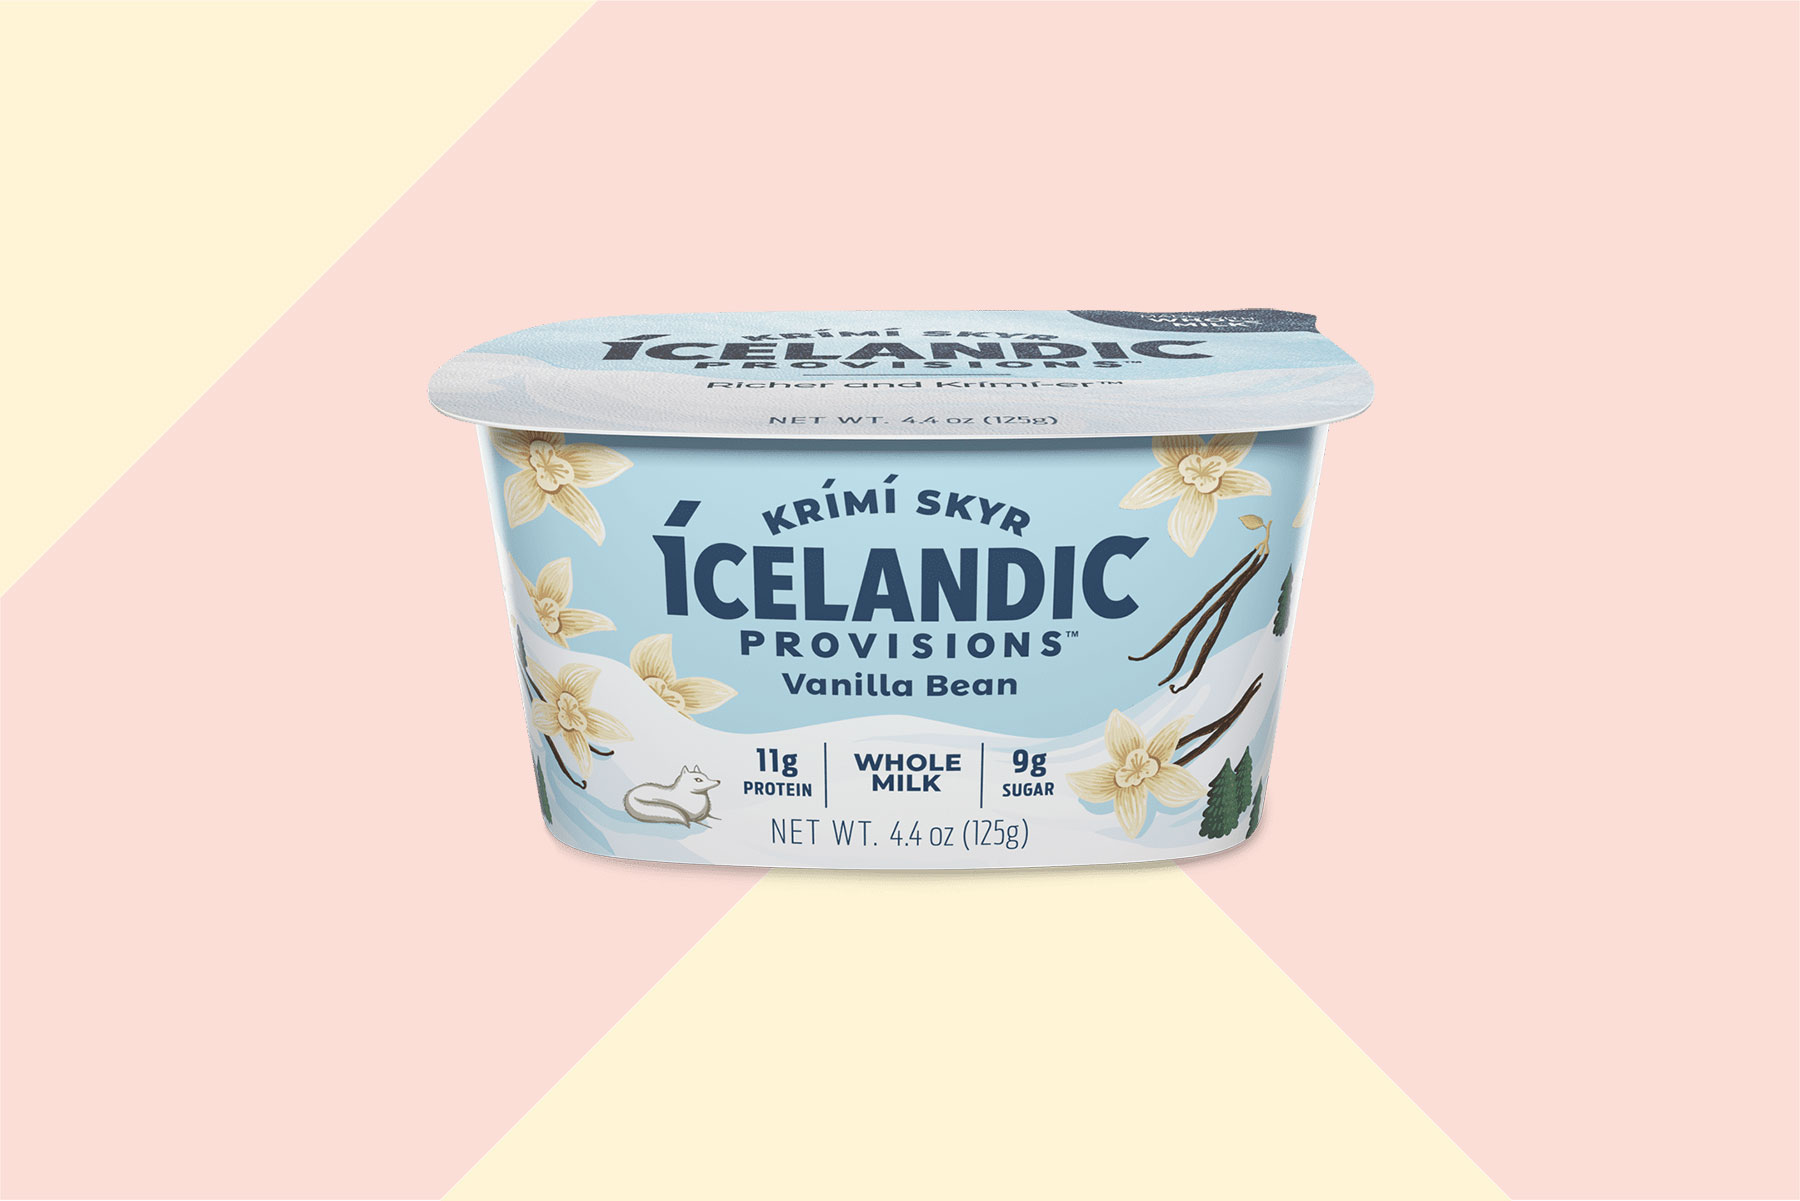 We Tried 184 Yogurts—These Are Our Top 6 Yogurts